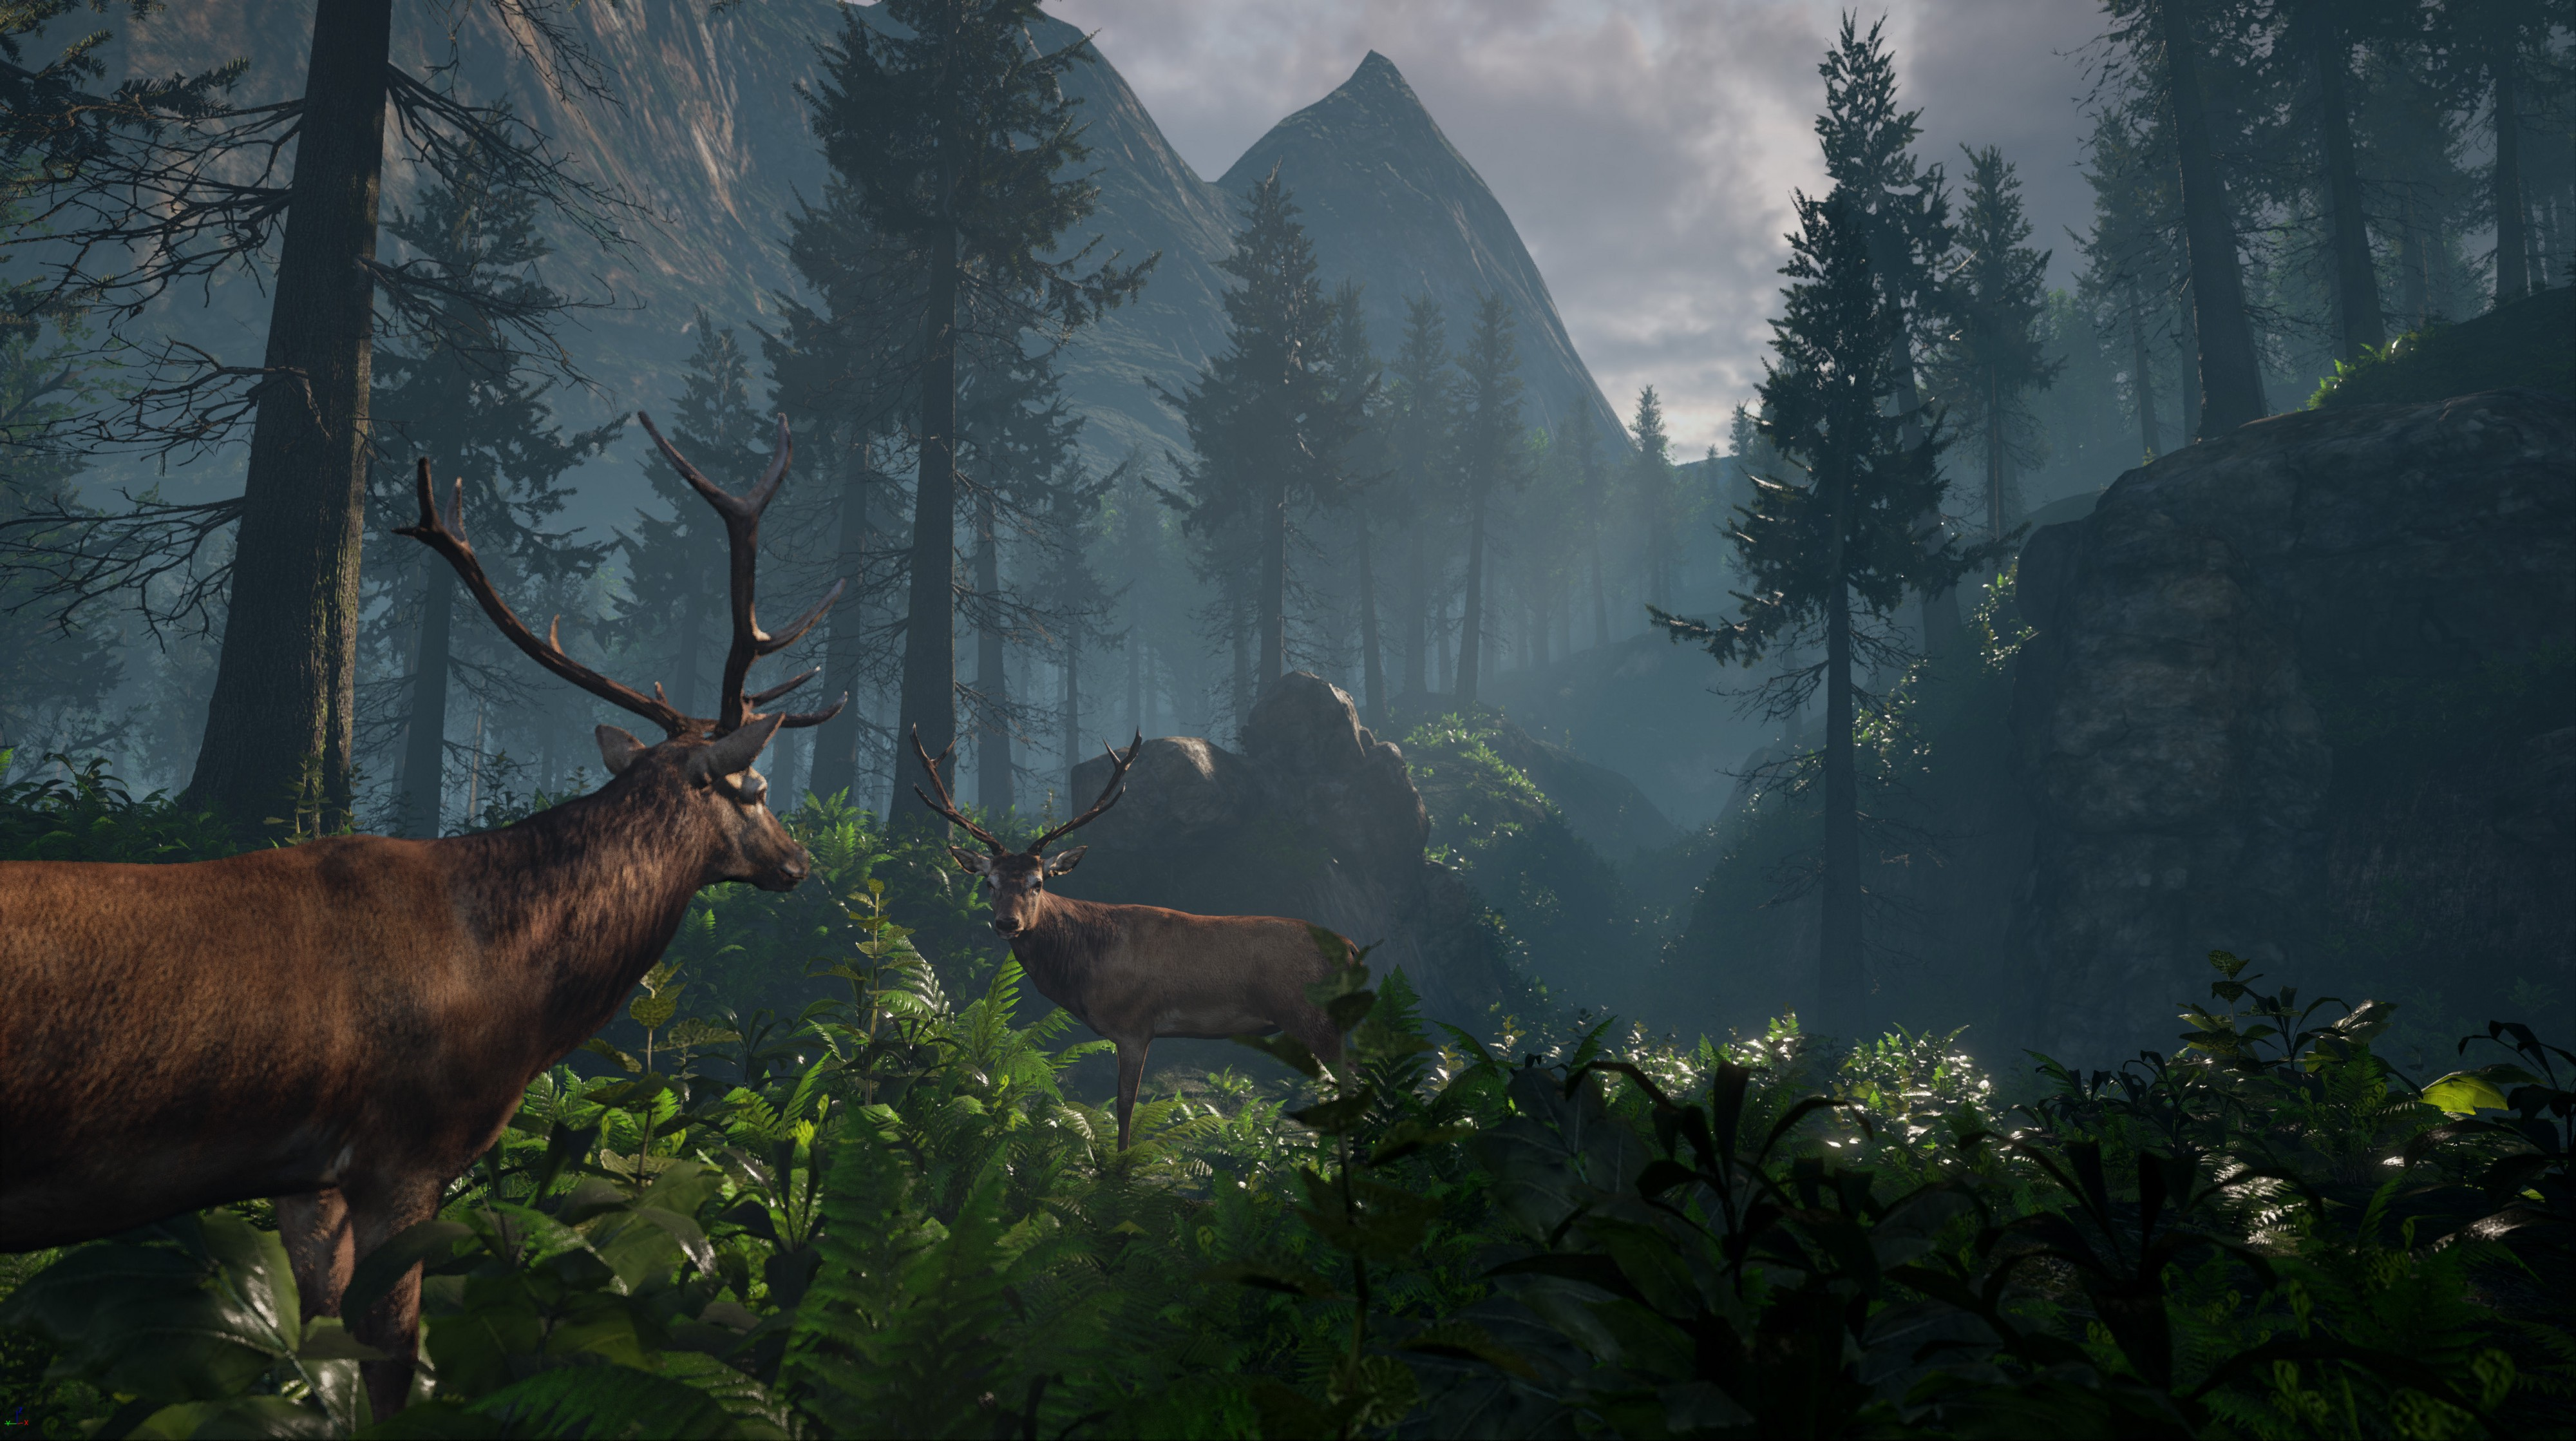 Creating the Audio for an Interactive Virtual Reality Nature